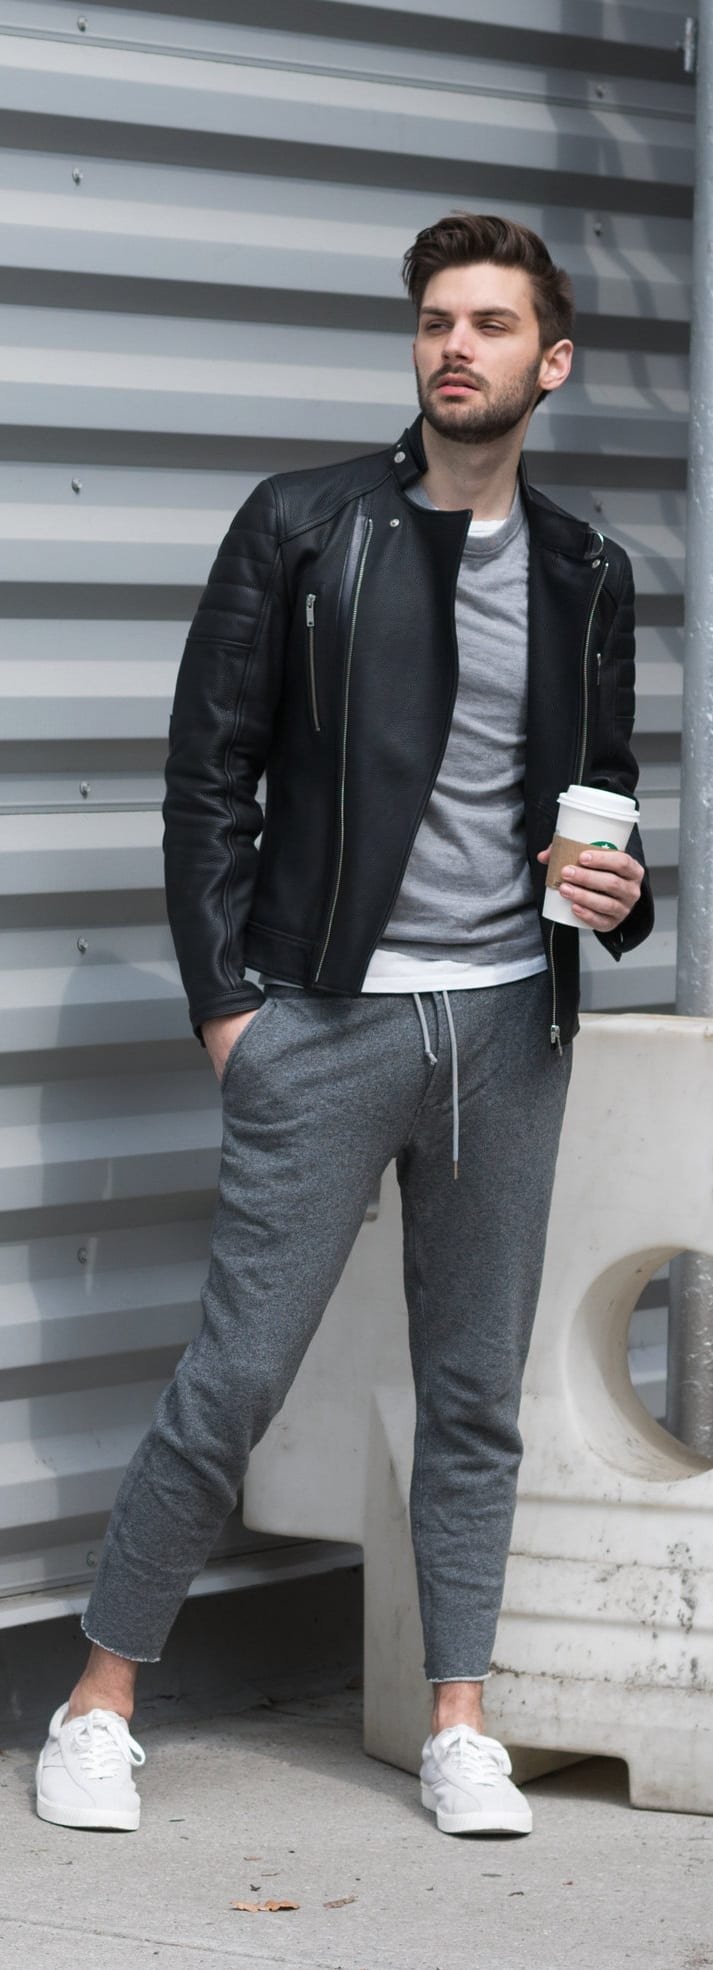 Trendy American Casual Outfit Ideas For Men